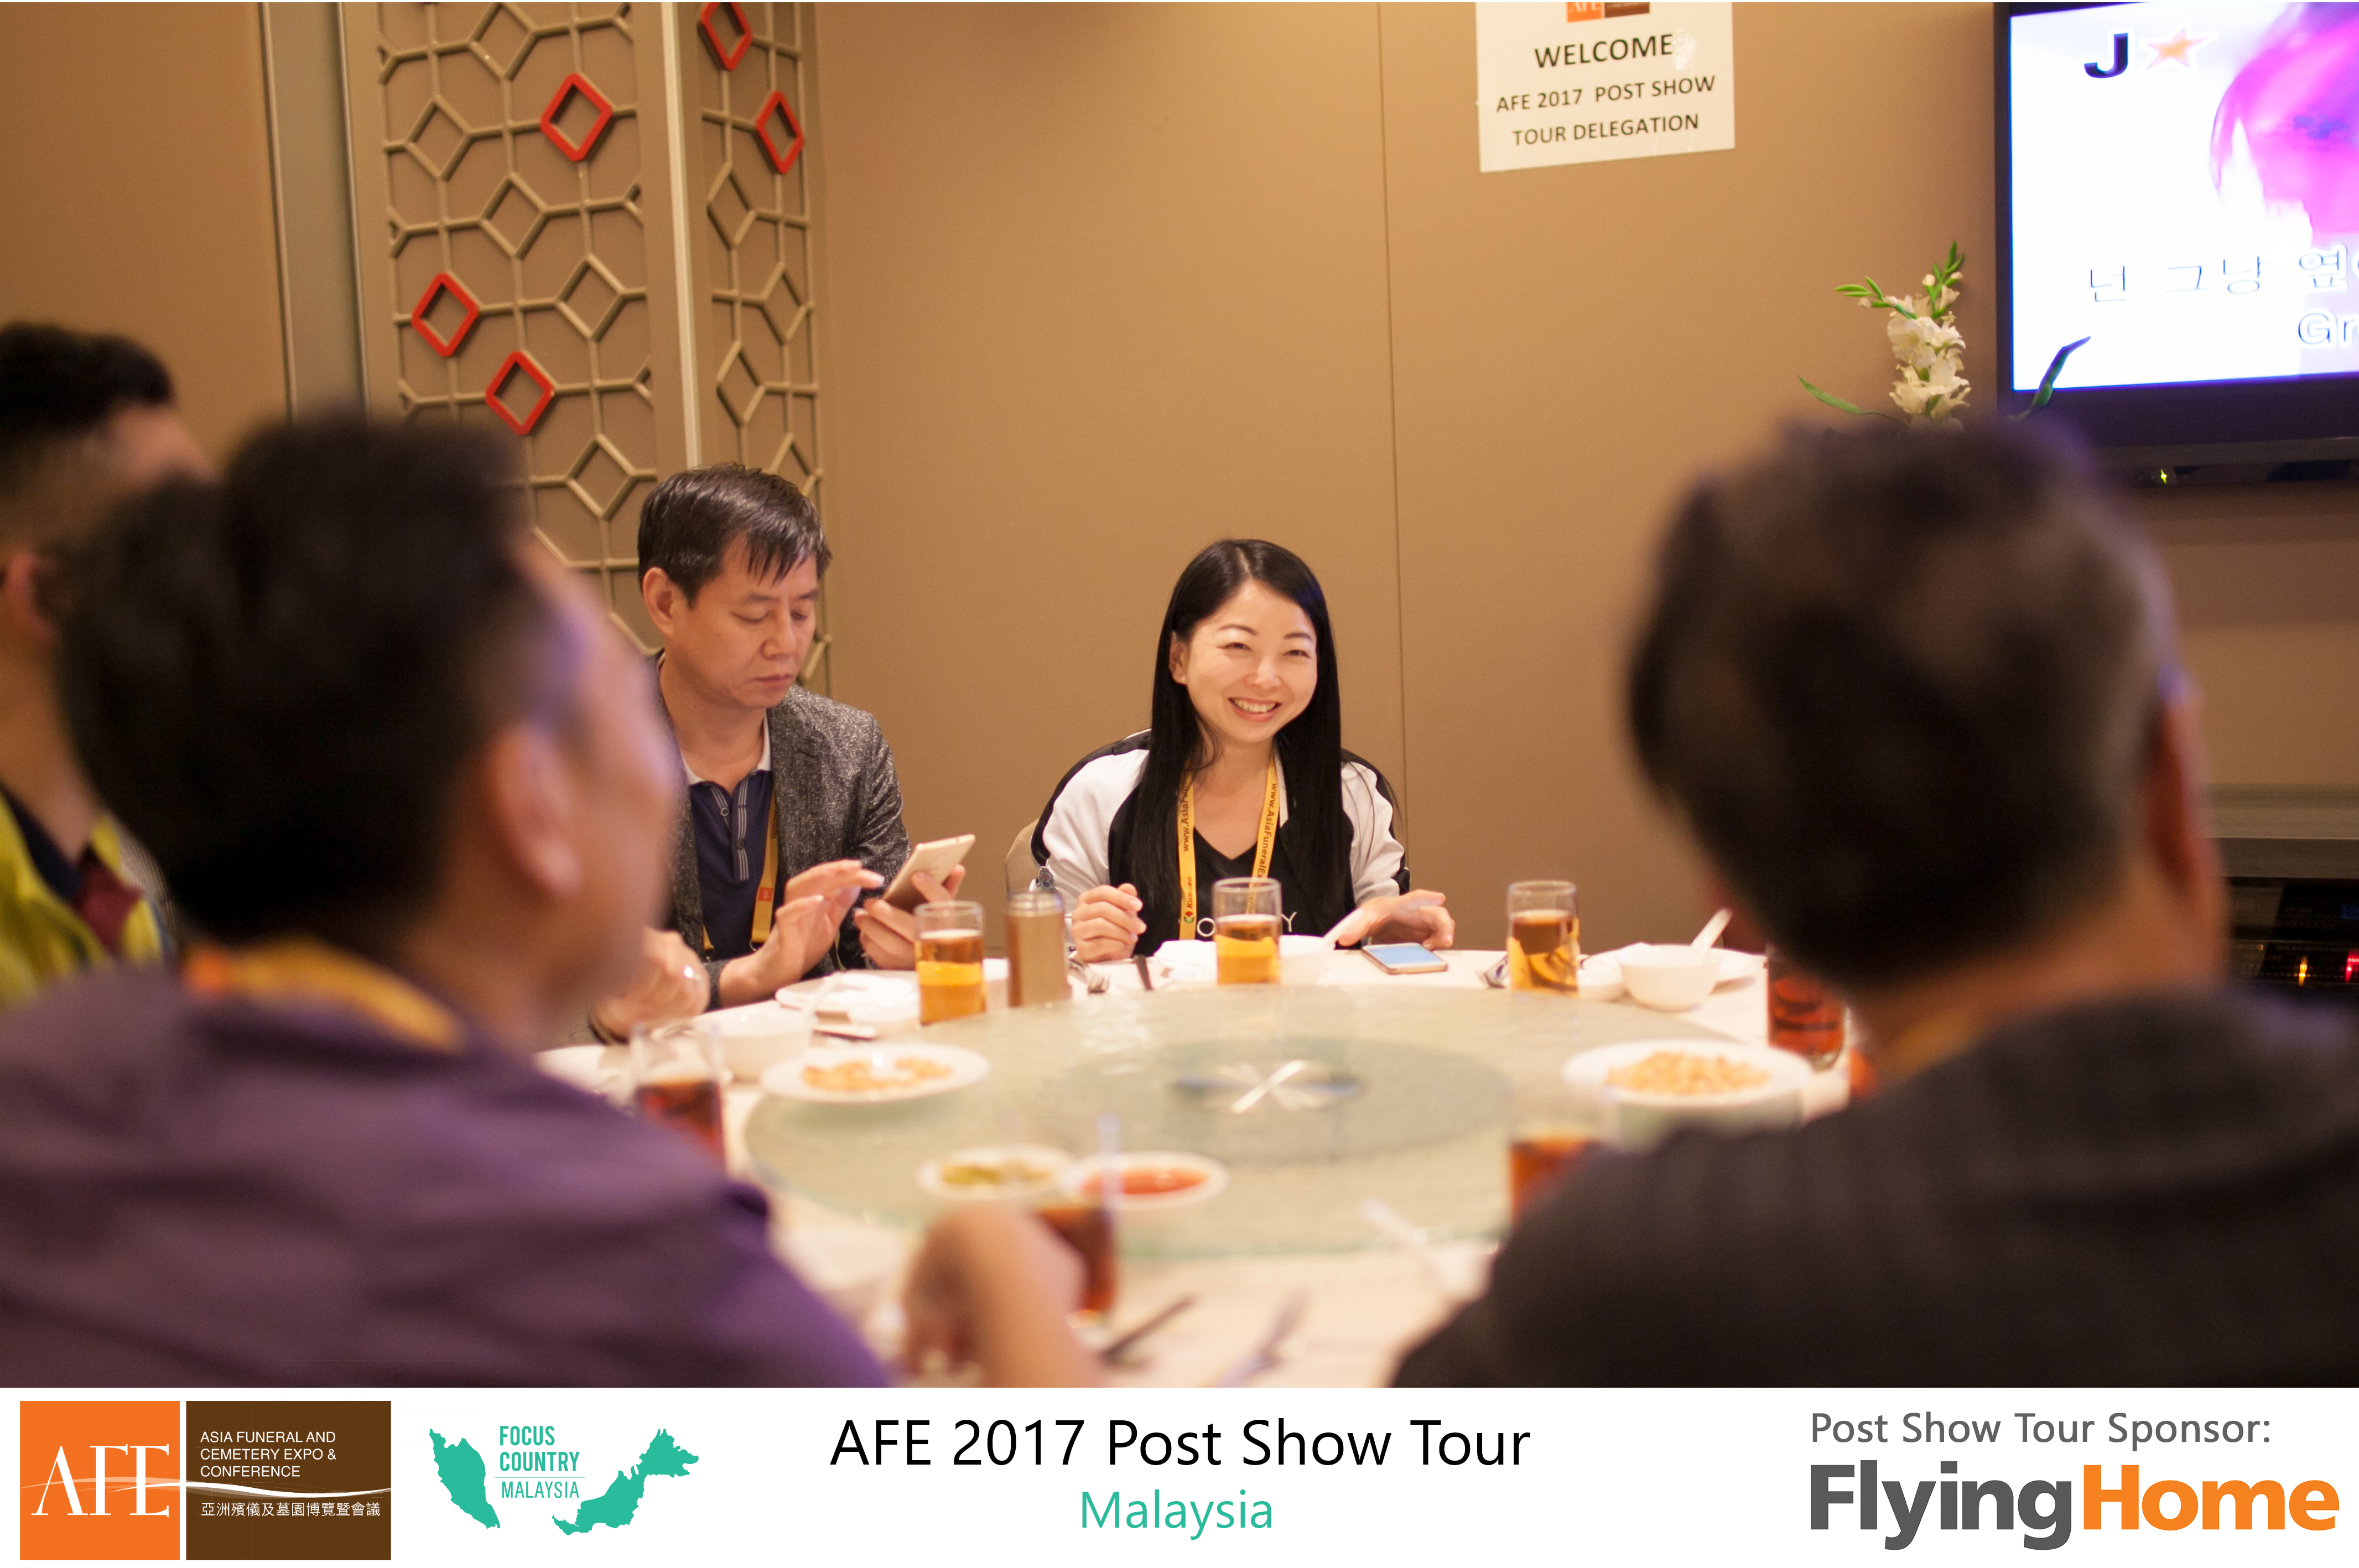 AFE Post Show Tour 2017 Day 1 - 37